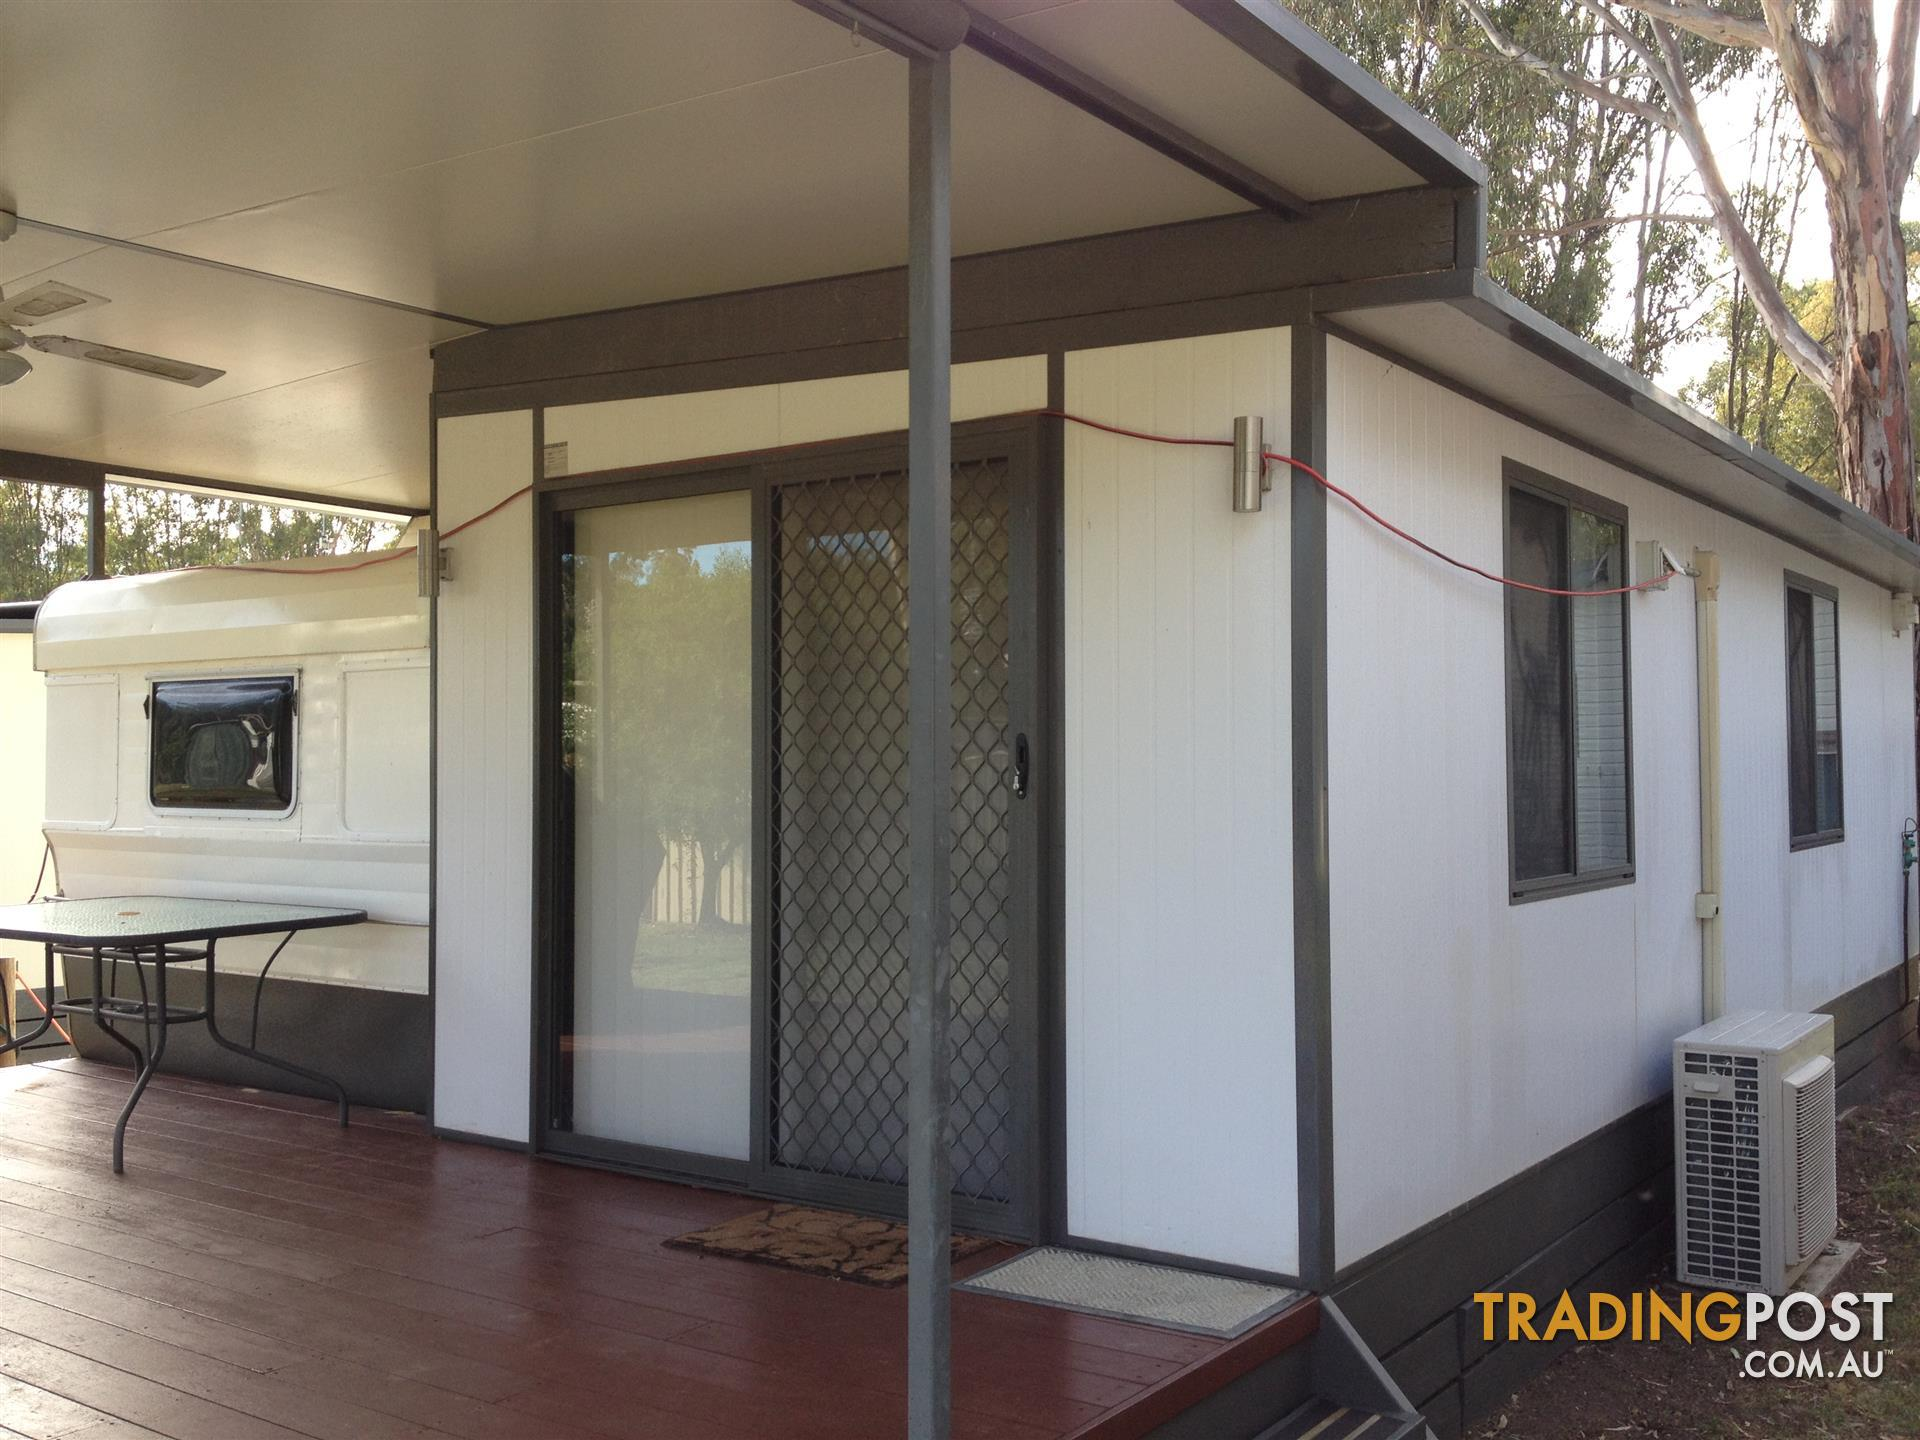 Onsite annual holiday caravan with aluminum annex echuca for sale in send message solutioingenieria Images